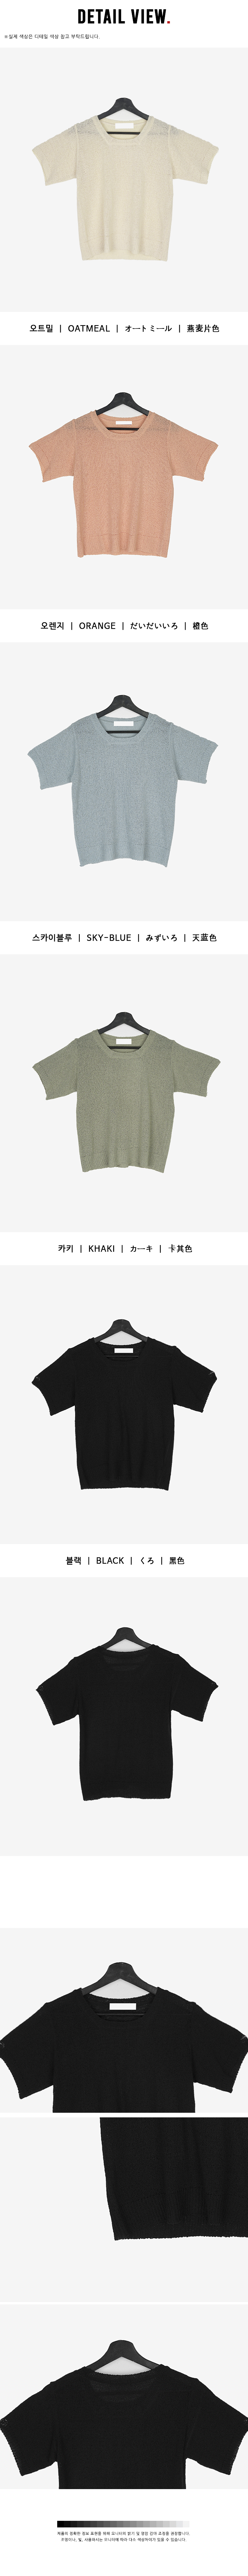 Andra Square Bookle Short Sleeve Knitwear